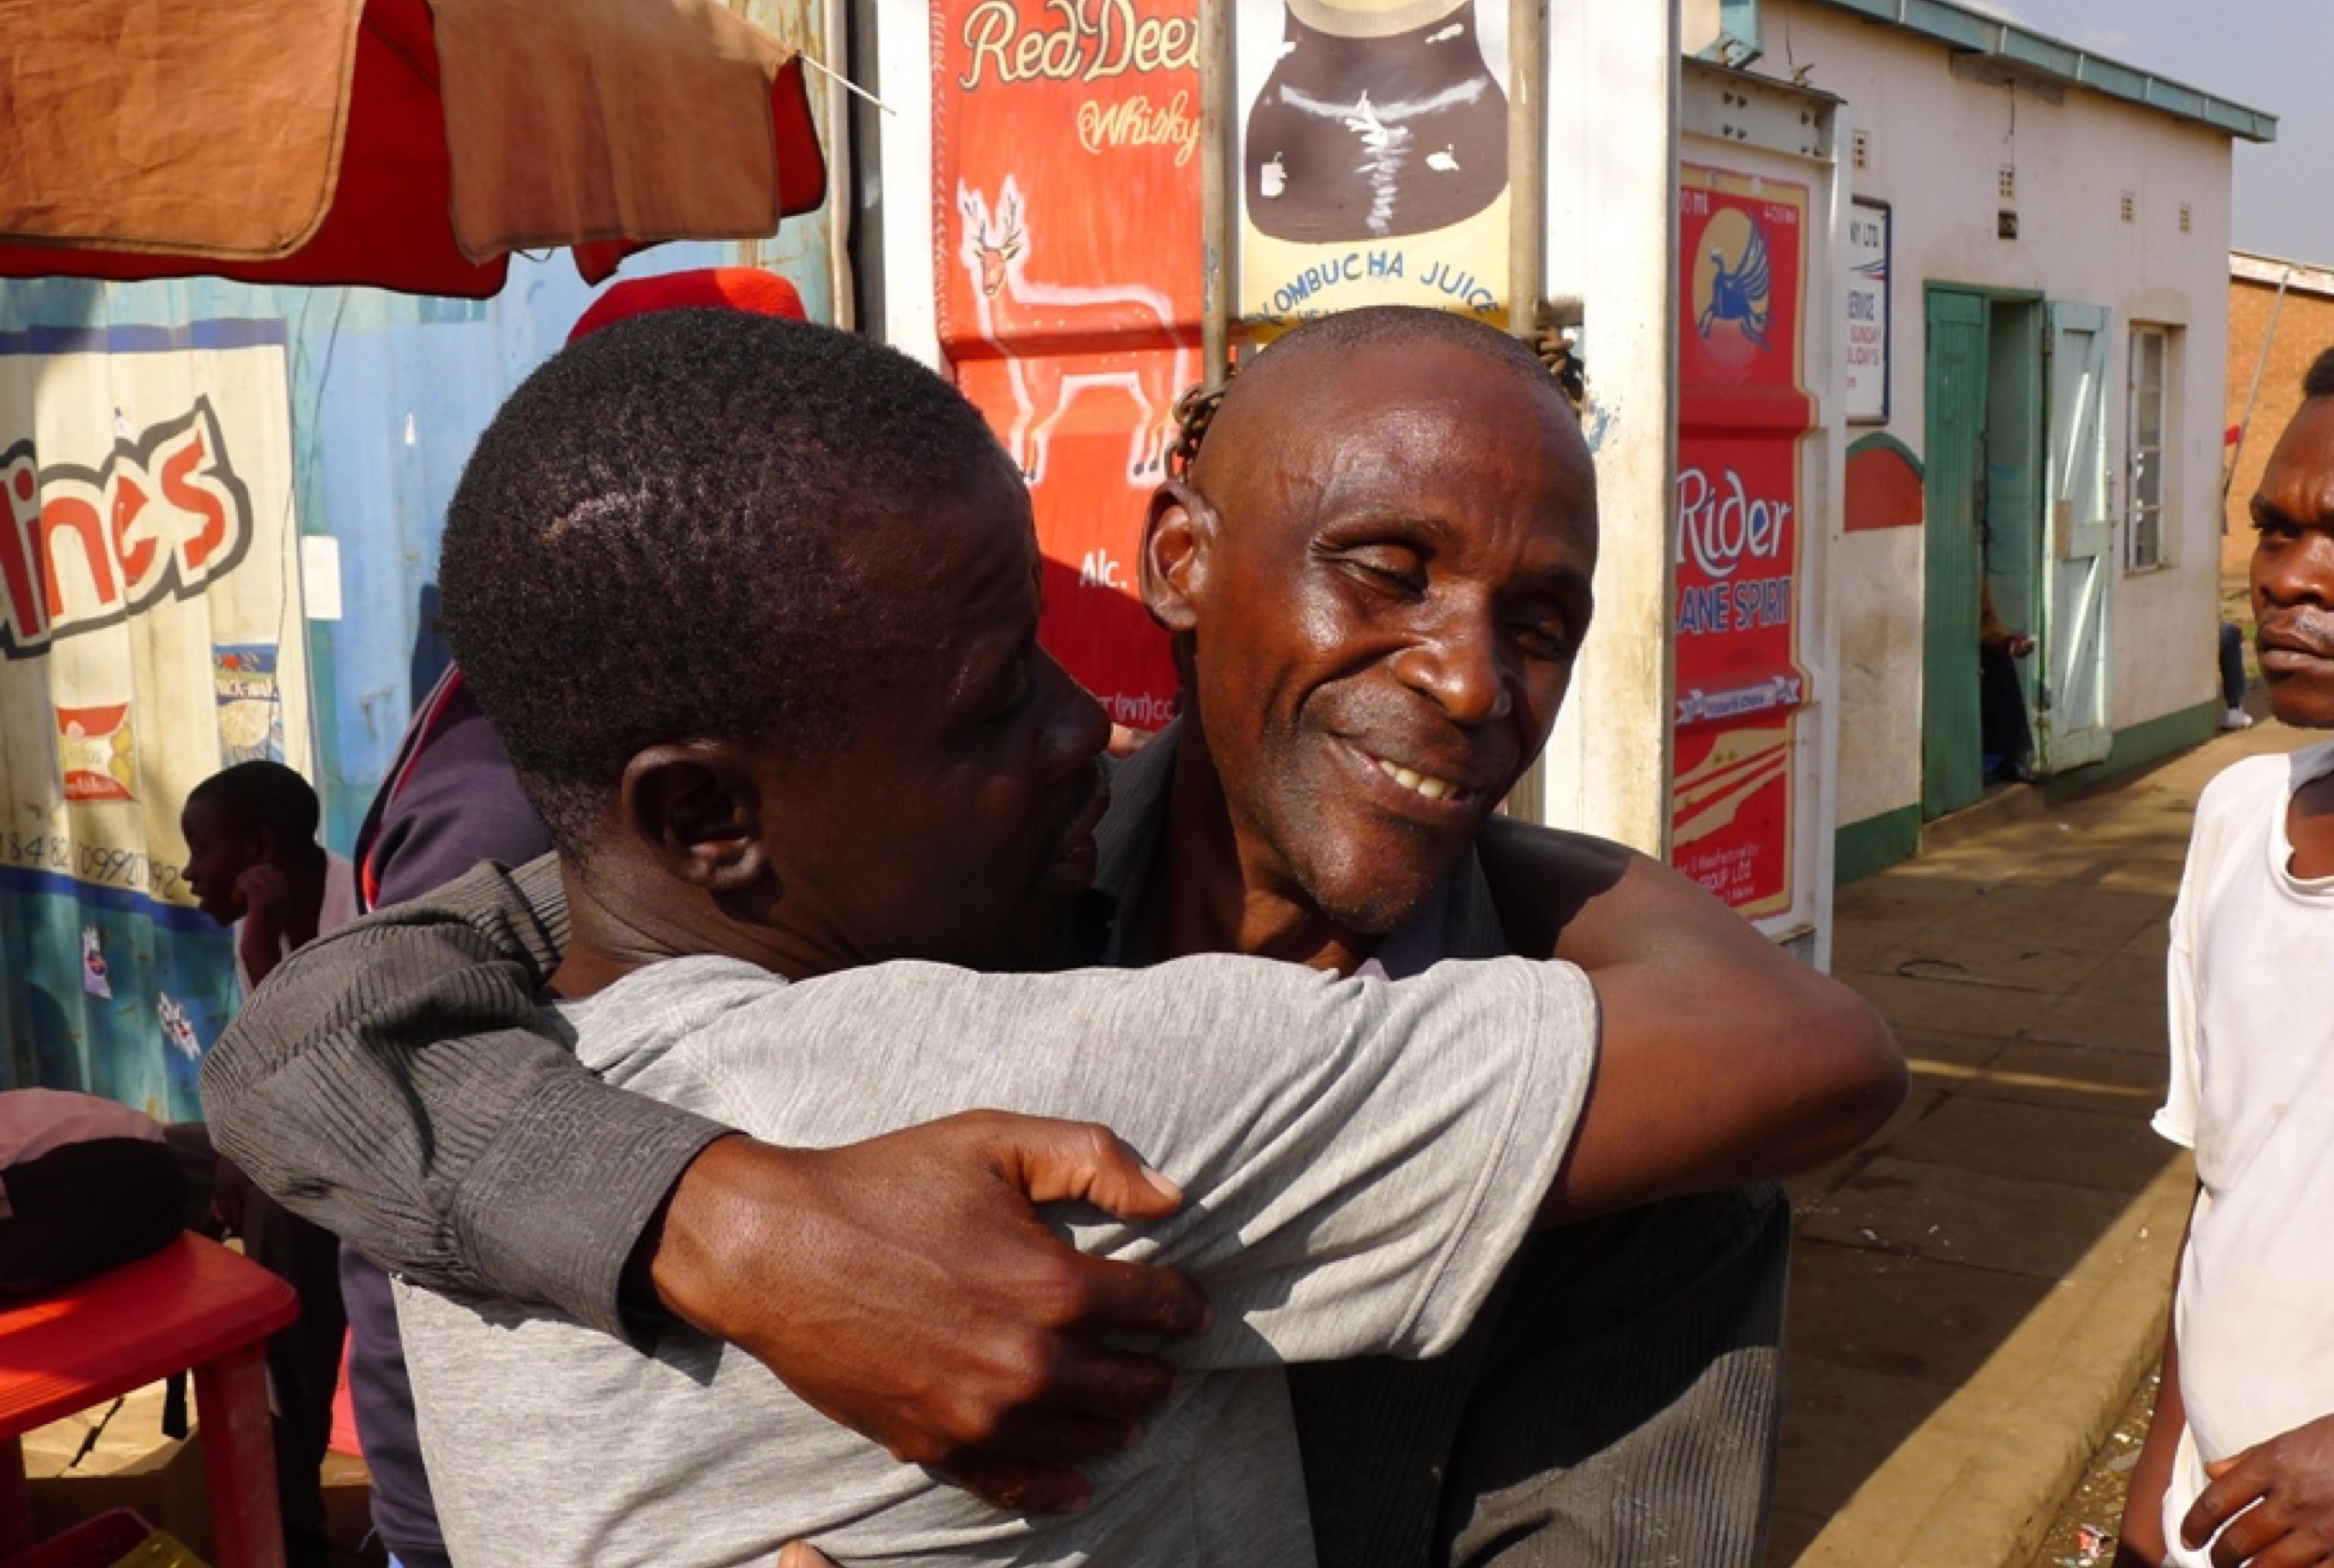 A man in a gray shirt and a man in a black shirt hugging each other.